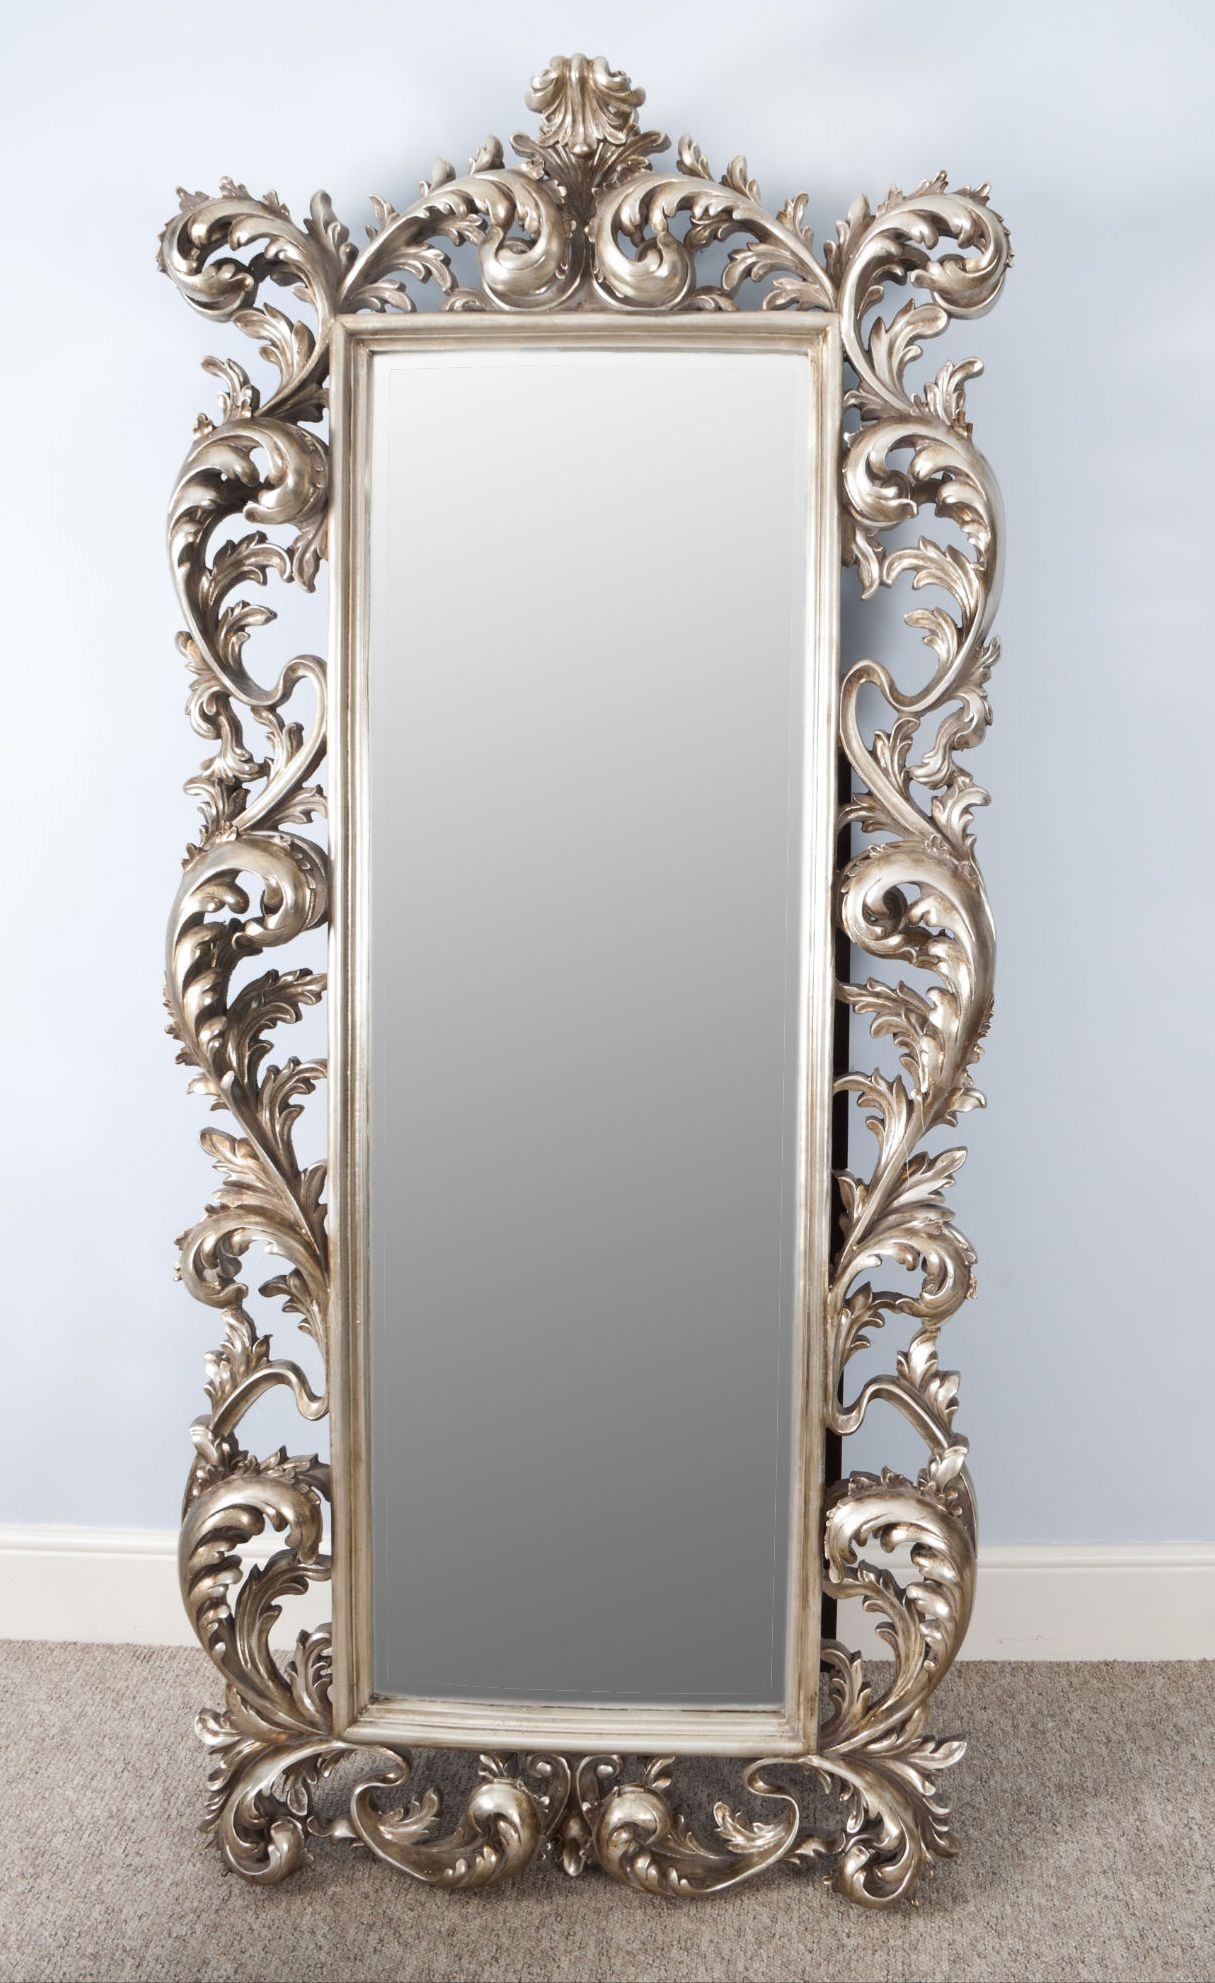 Wondrous Old Oval Mirror Antique Cheval Wall Mirror Likewise Grey With Vintage Mirrors For Sale (View 3 of 15)